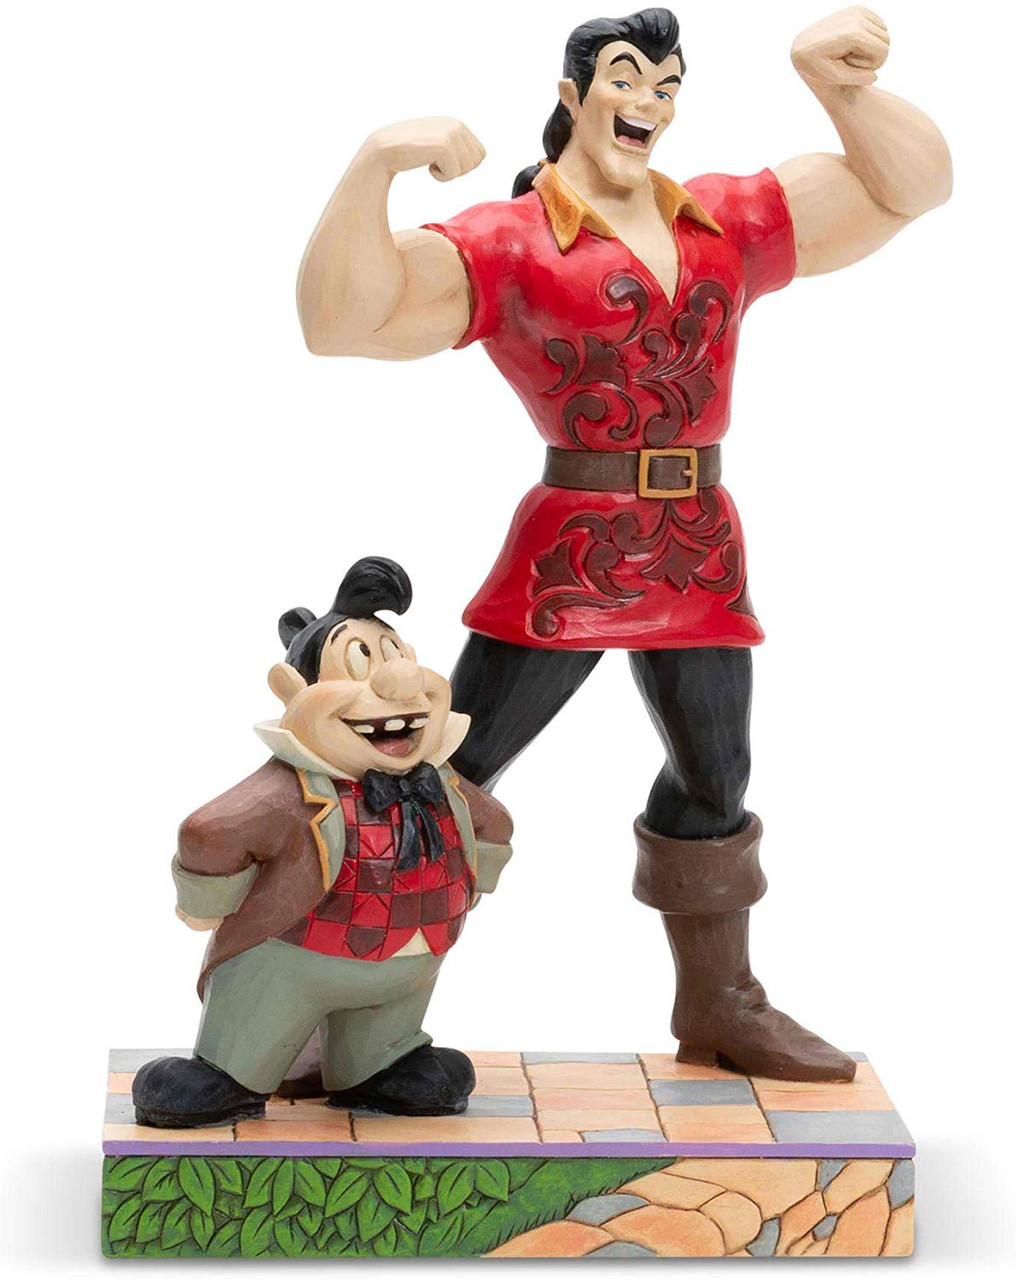 Enesco Disney Traditions By Jim Shore Gaston And Lefou Figurine Colby Collectibles